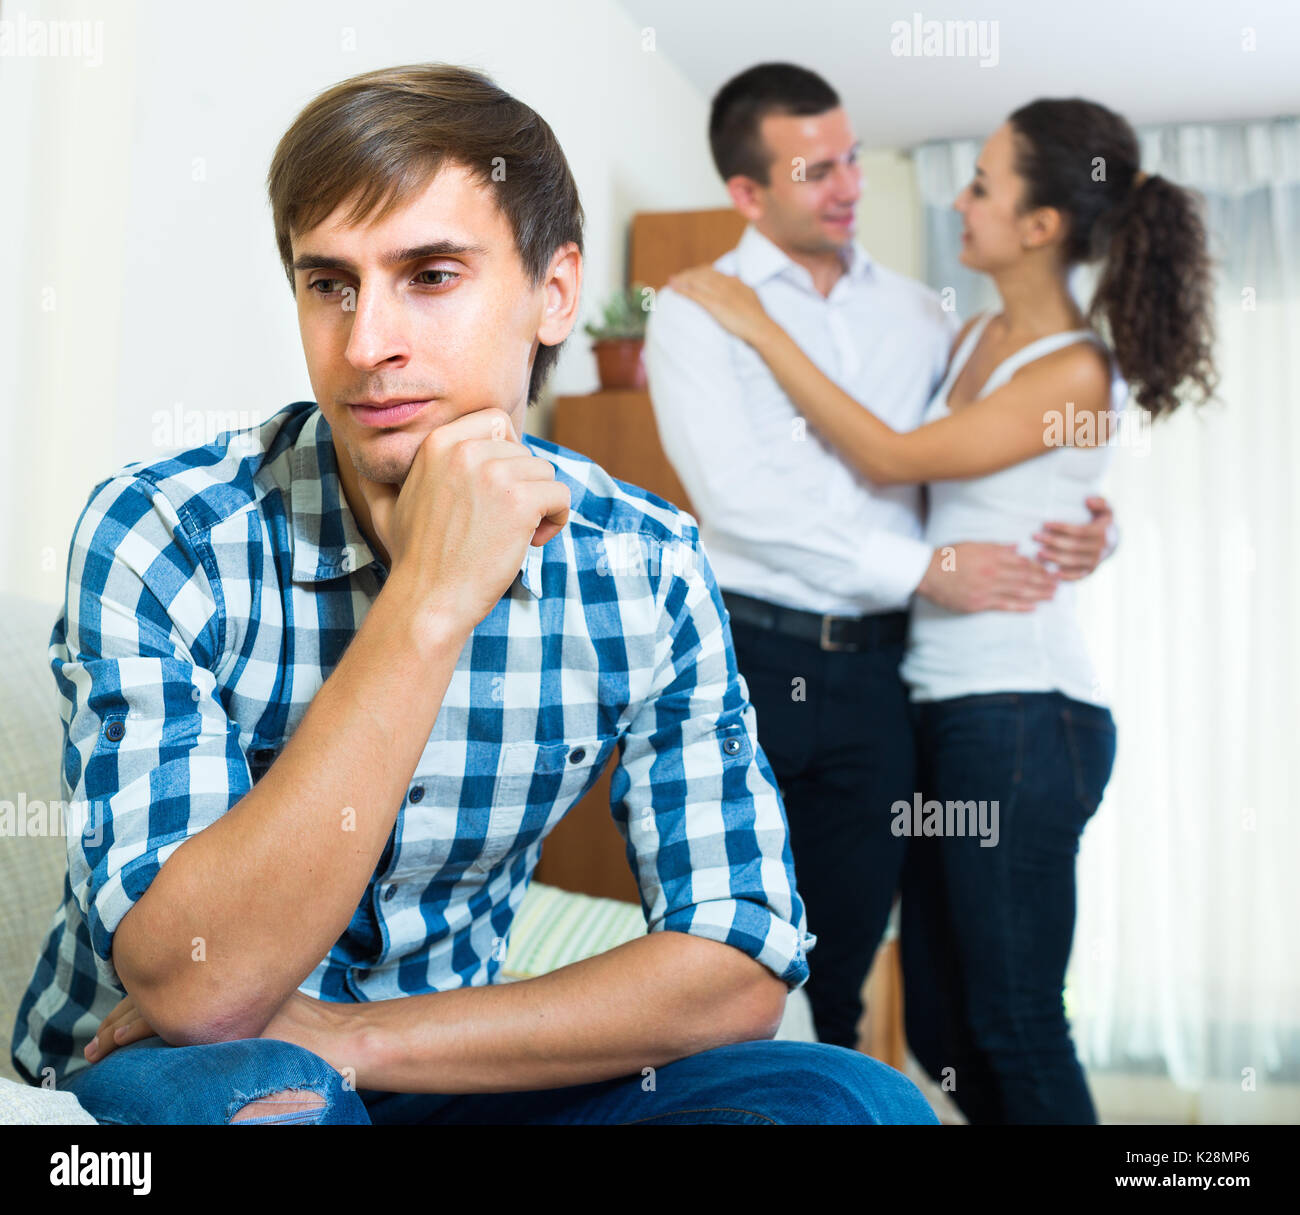 Man suffering in love triangle: young woman prefers another guy - Stock Image